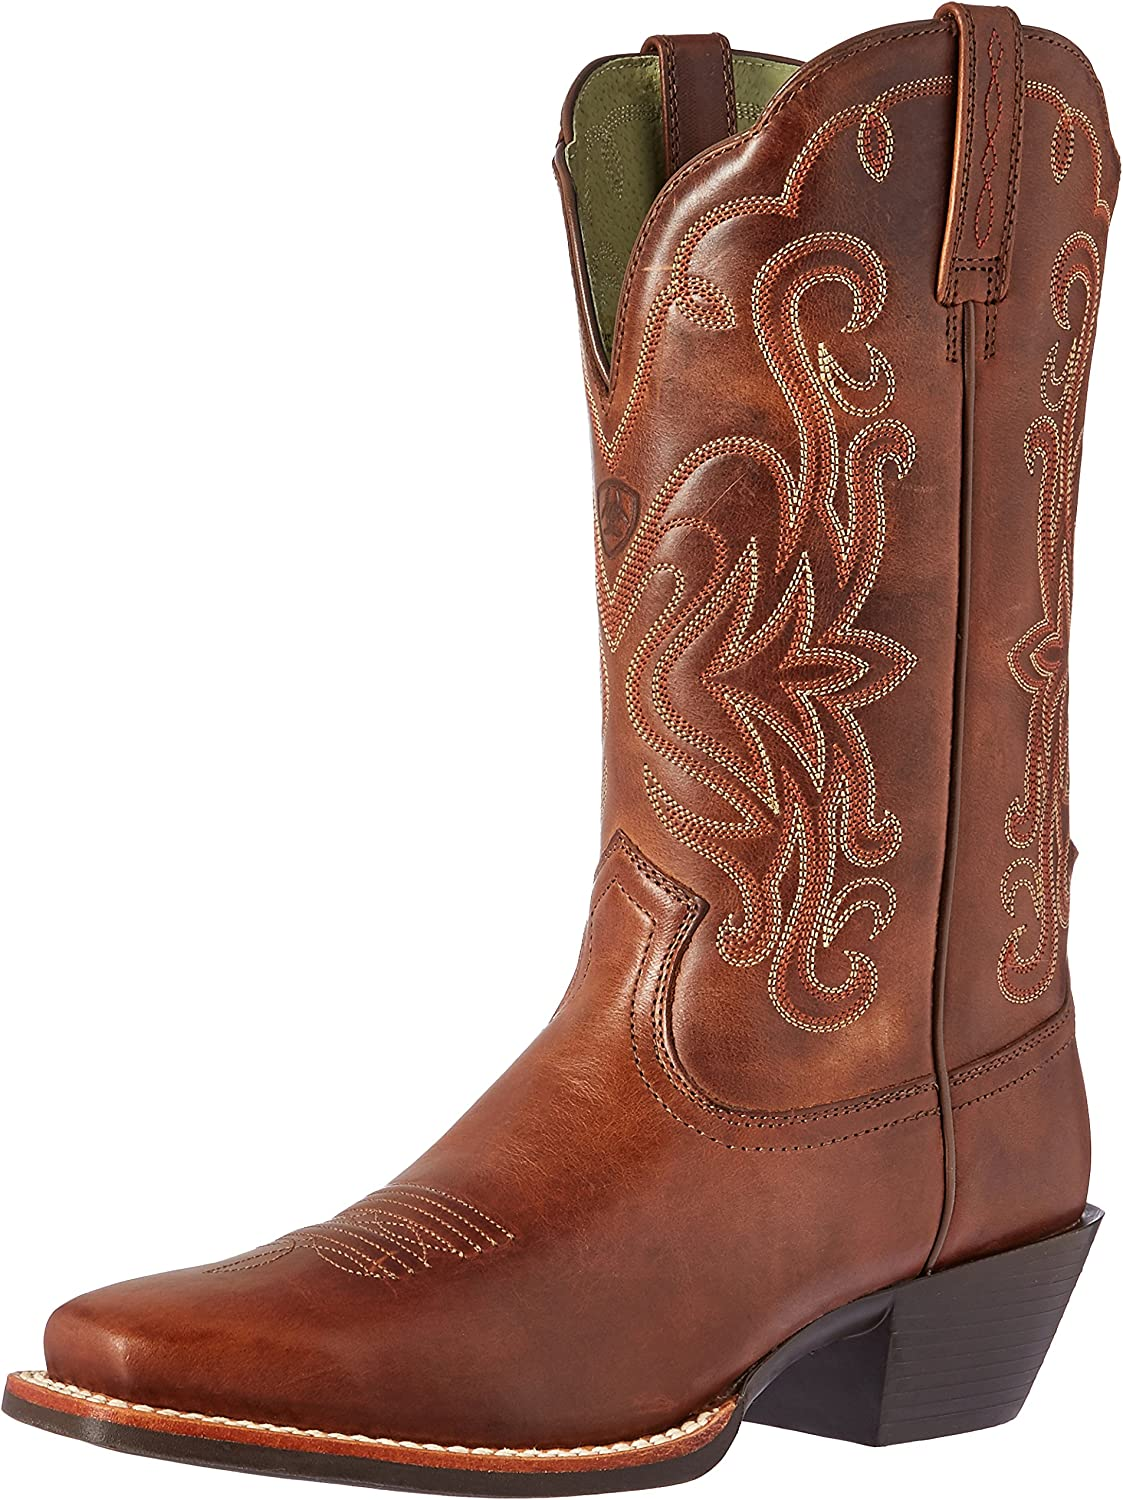 Brown Cowboy Boots For Women Cheap